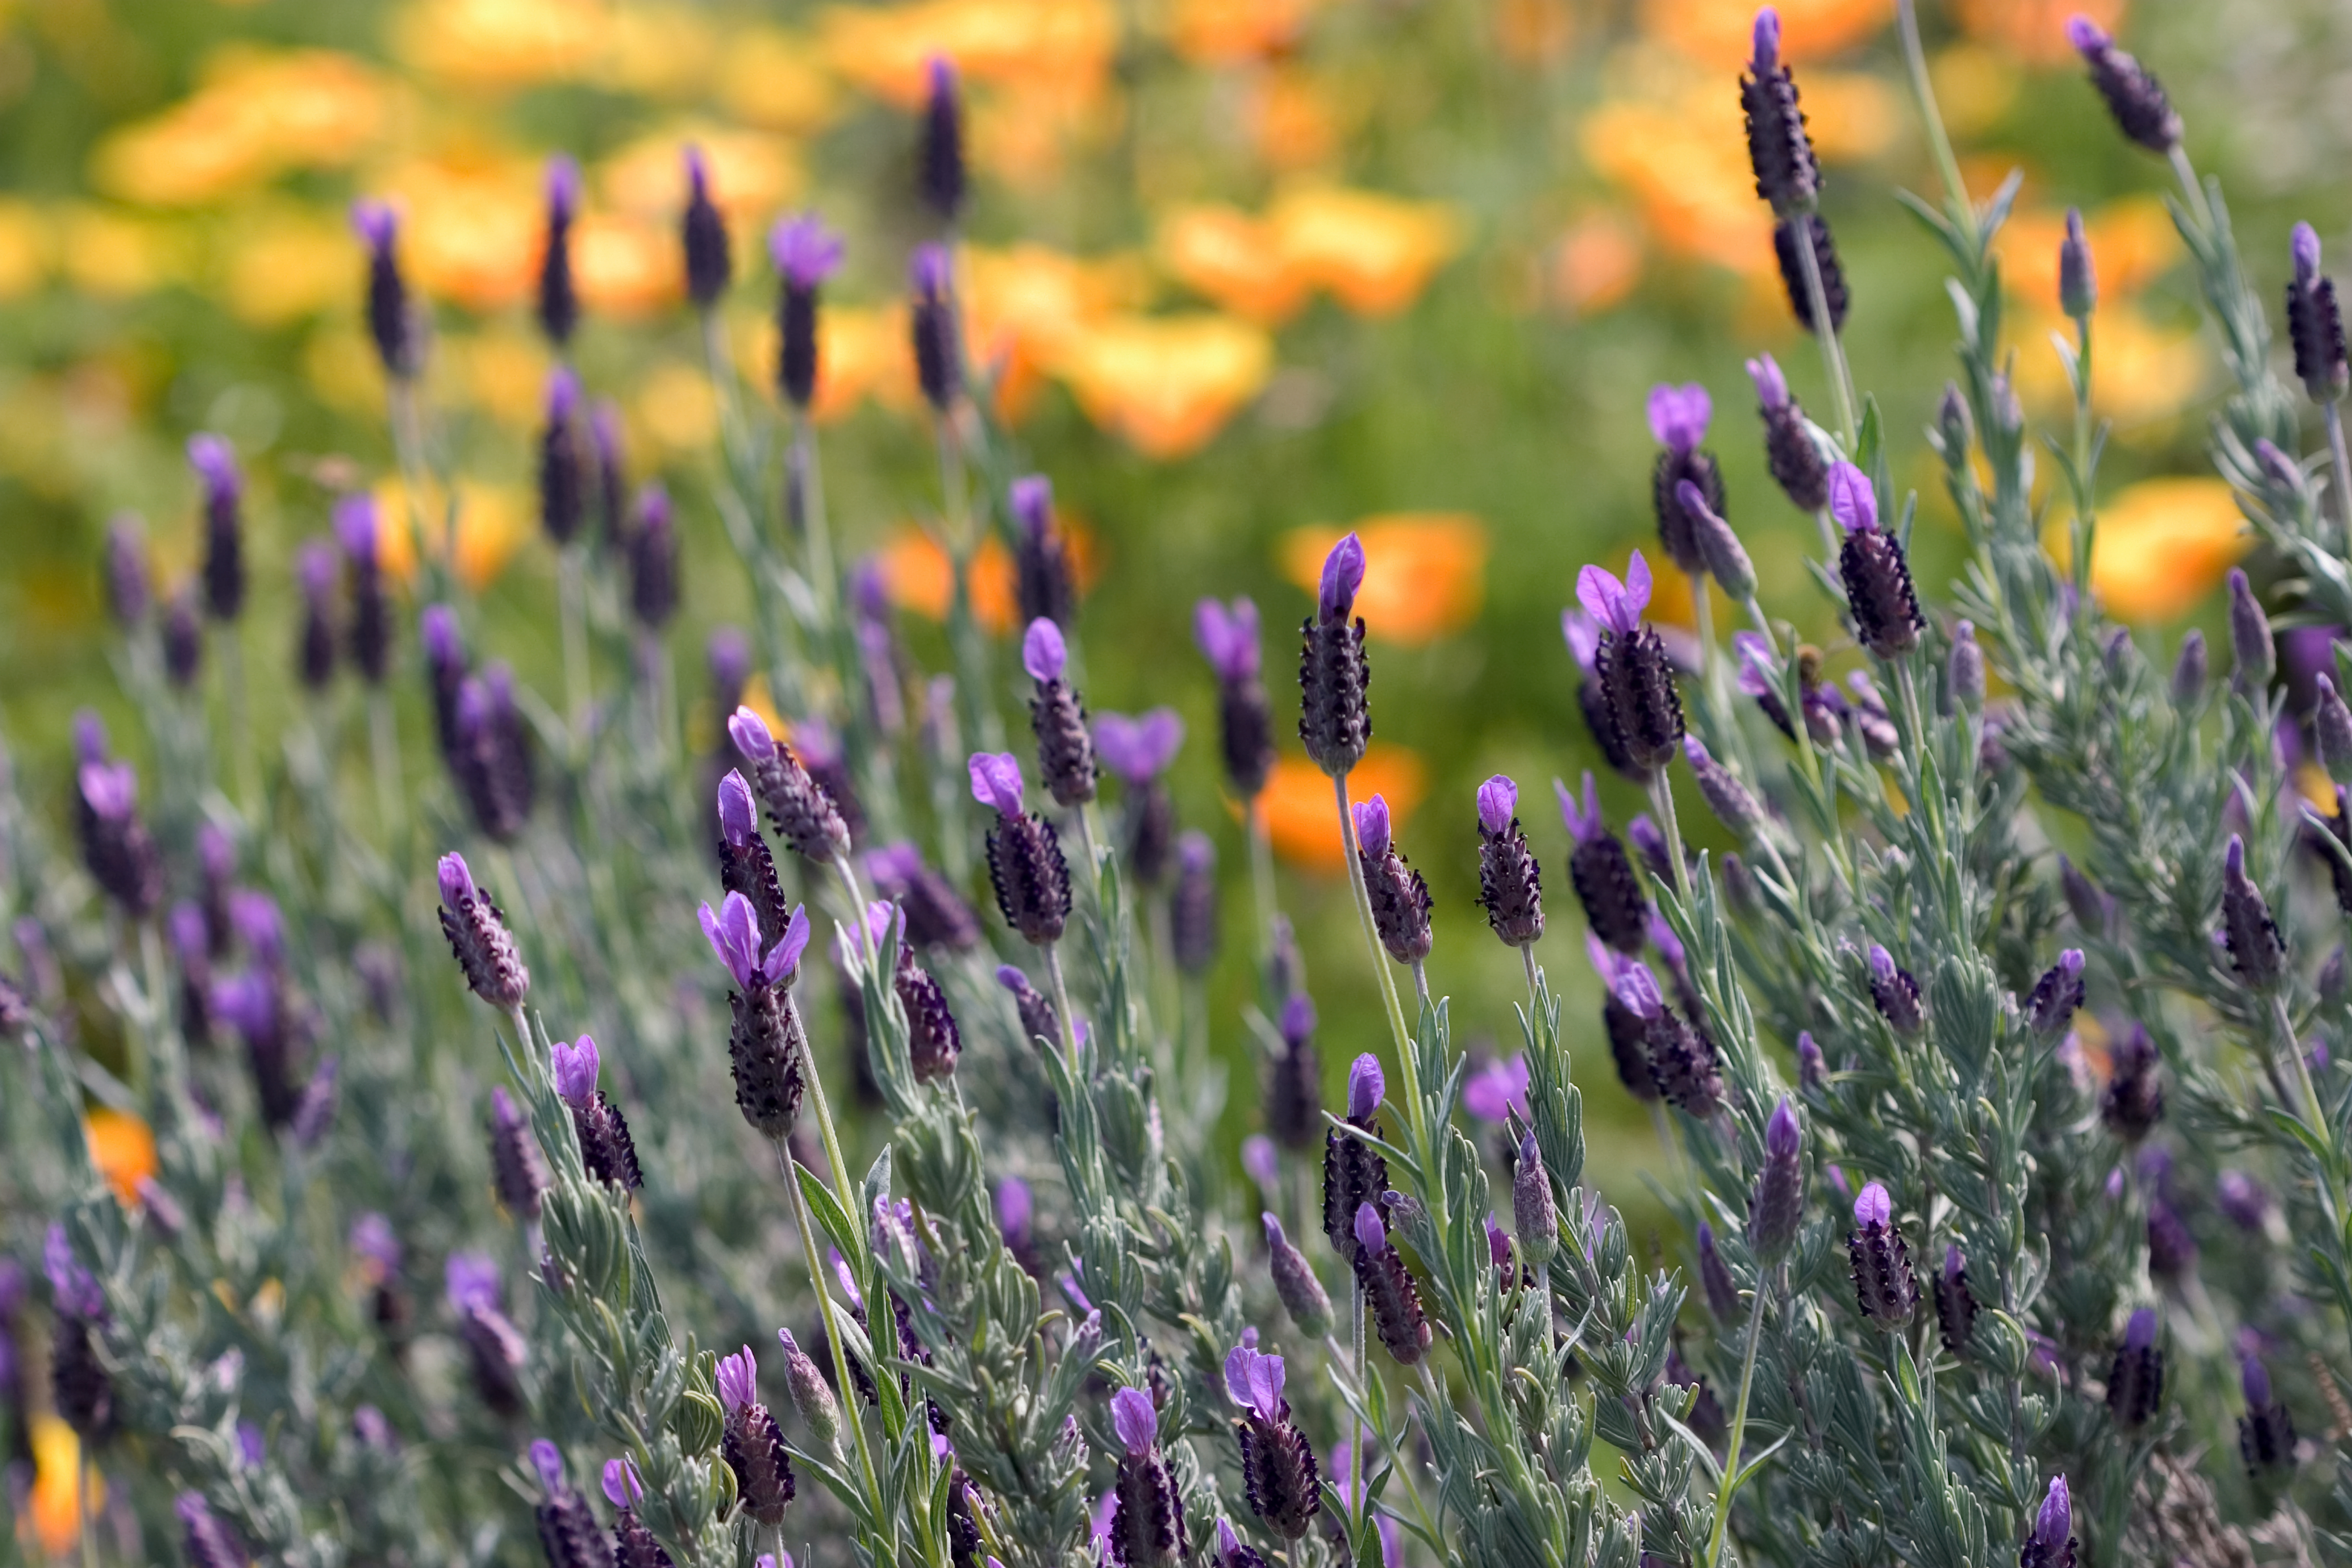 This is a photograph of Spanish lavender (Lavandula